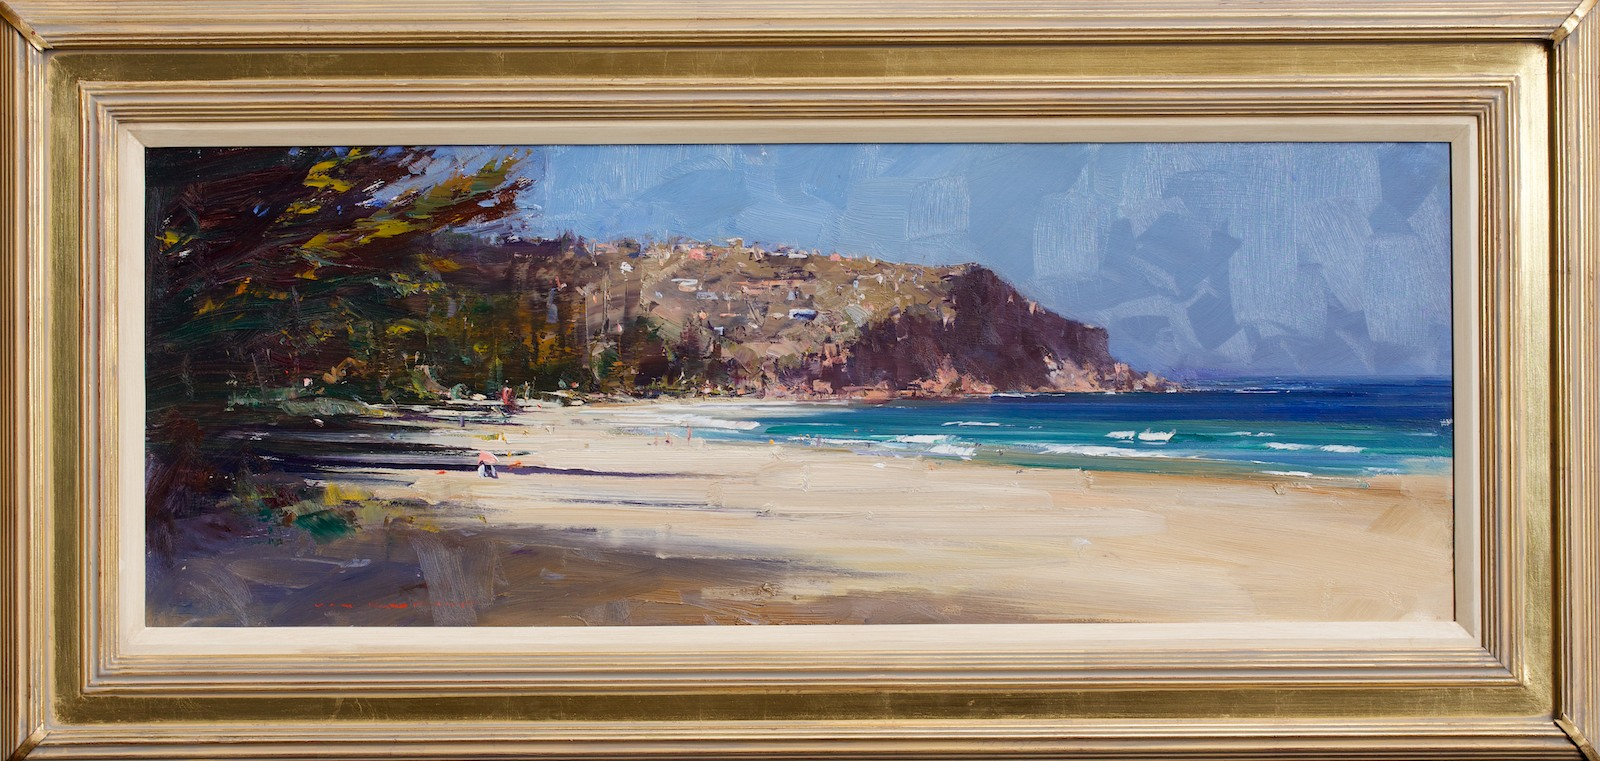 #14573 Ken Knight 'Whale Beach' Oil on Board 60cm x 123cm